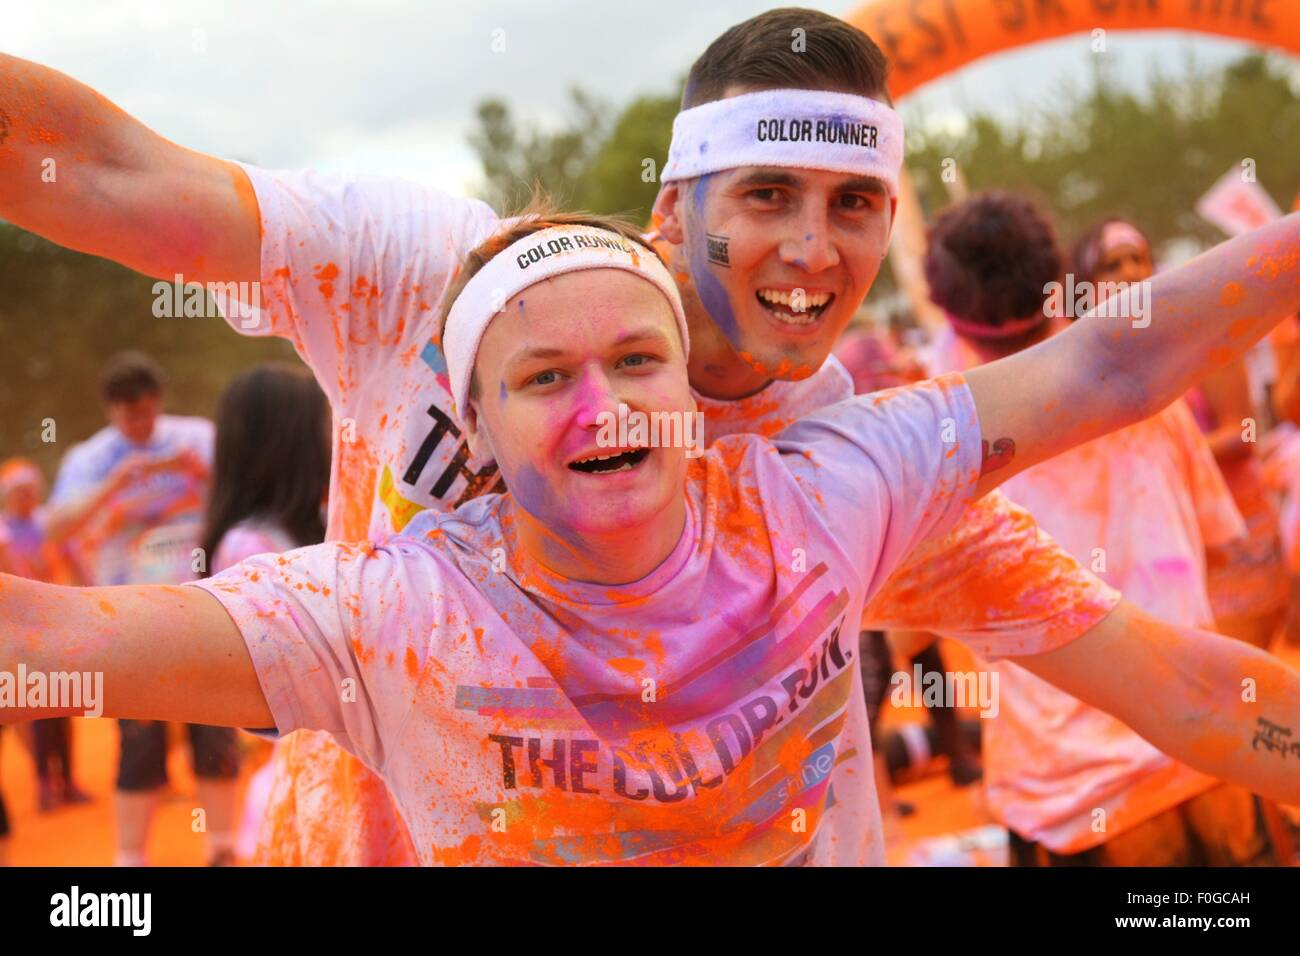 Birmingham Uk Saturday 15th August 2015 The Color Run Dubbed The